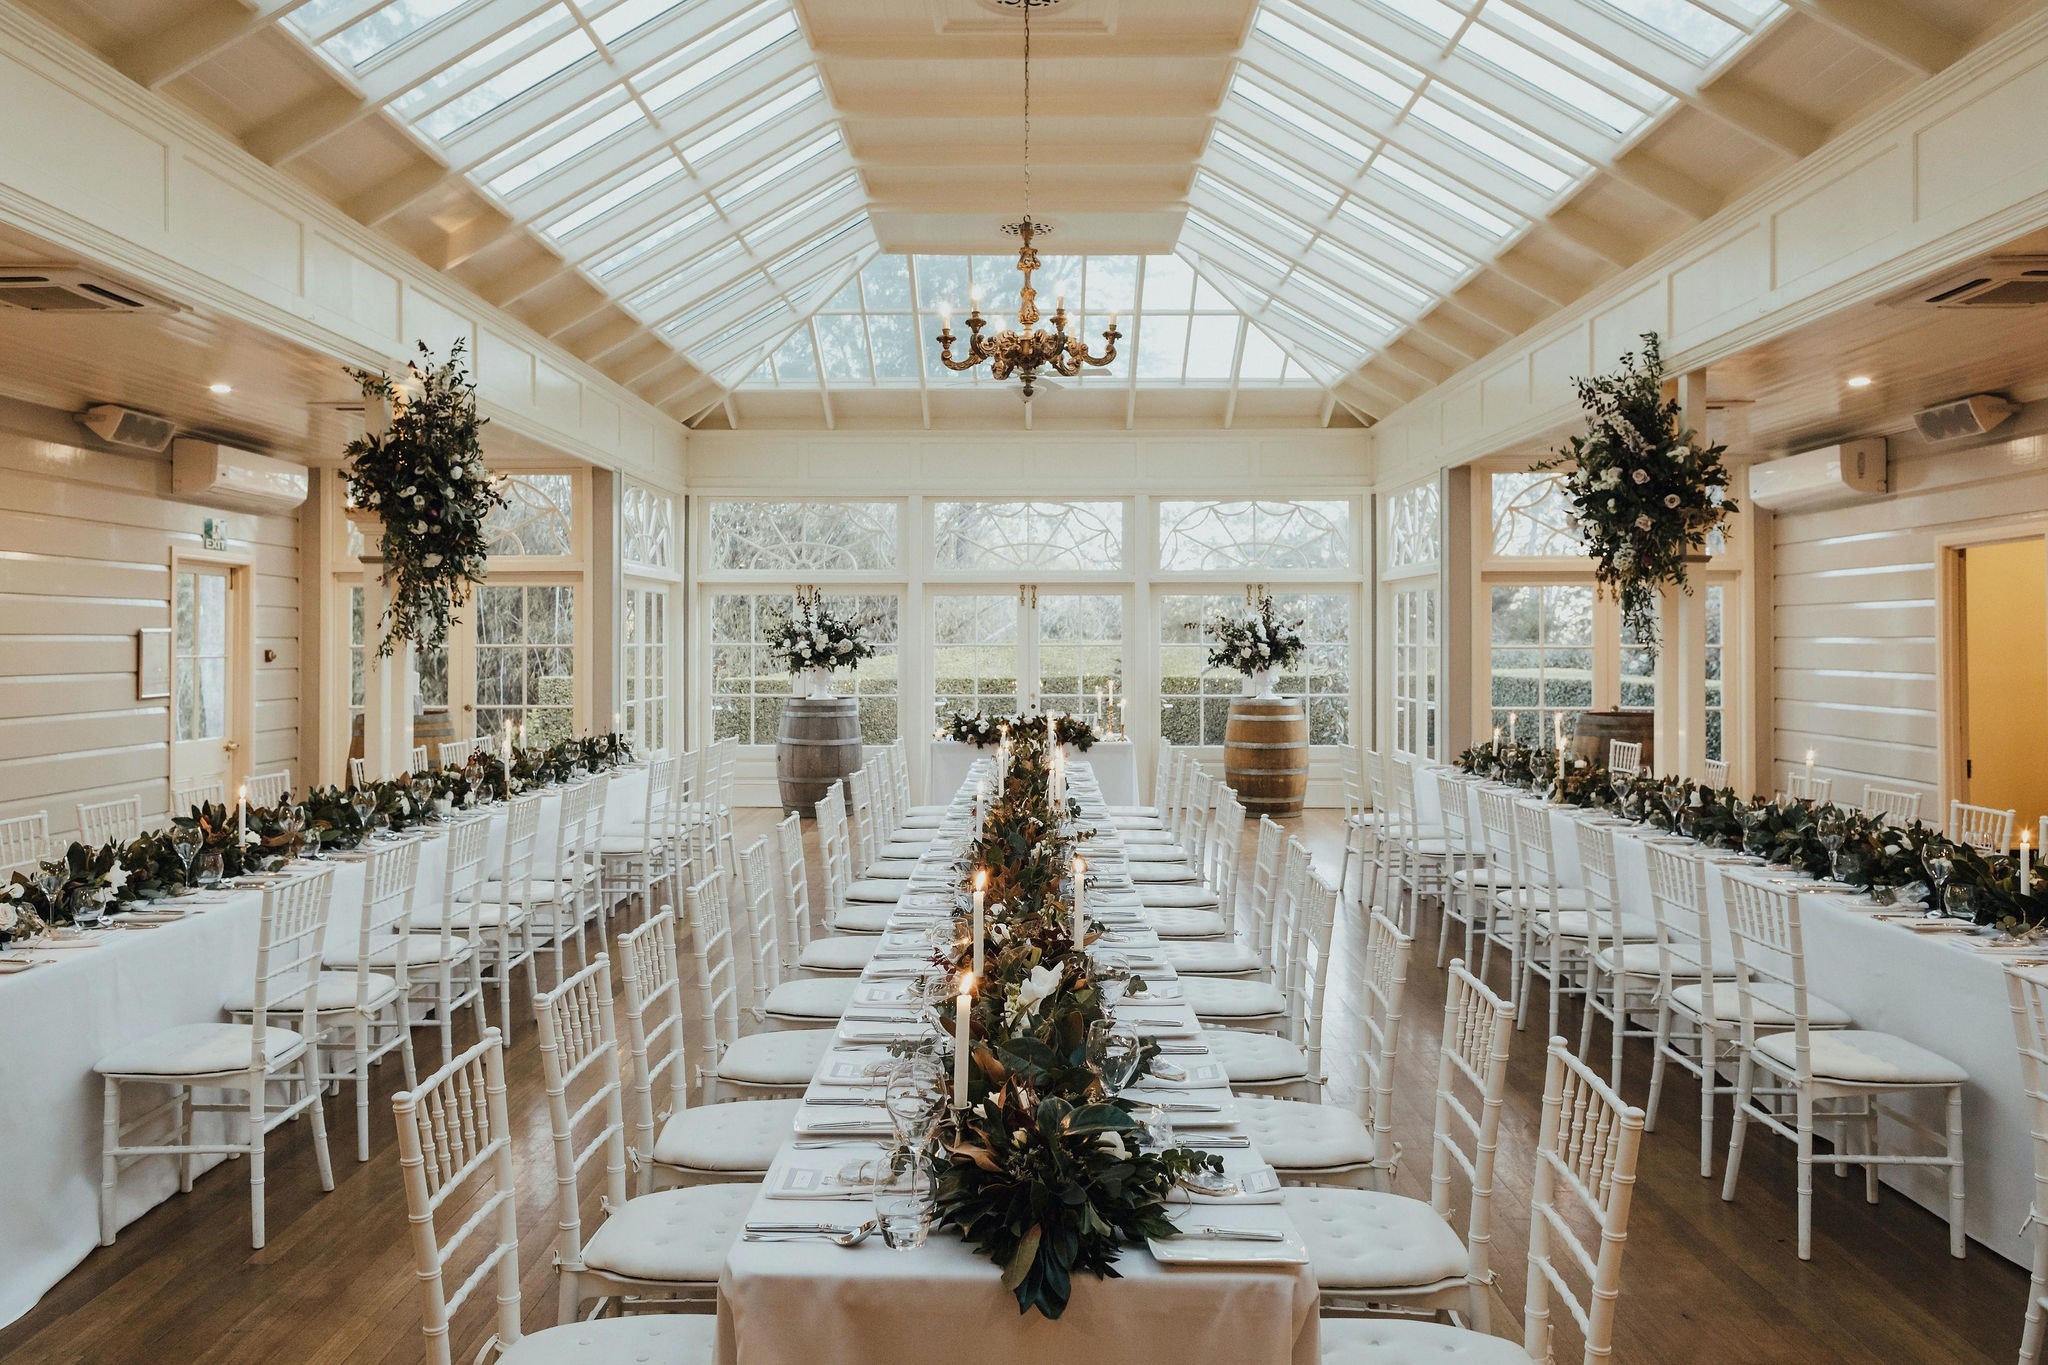 Reception area, The Conservatory, white linen long tables